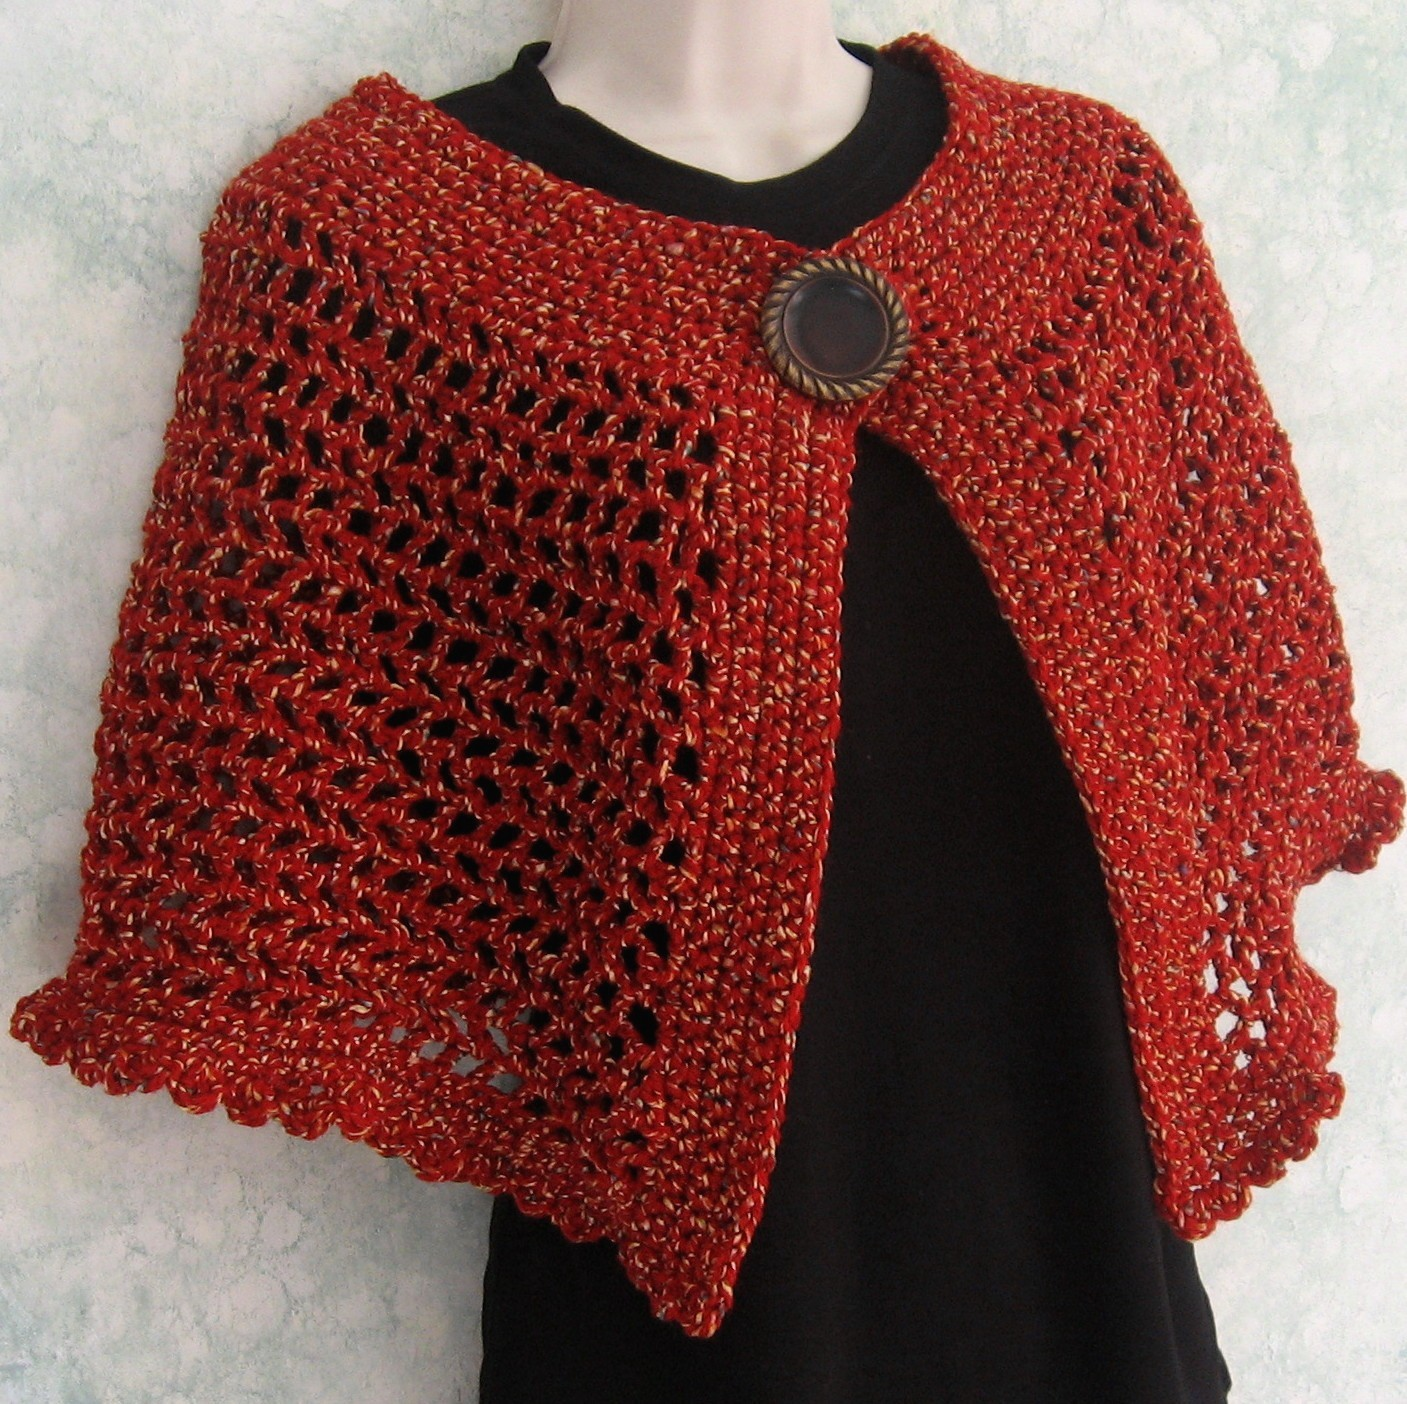 37 creative crochet poncho patterns for you patterns hub crochet poncho with buttons pattern bankloansurffo Choice Image